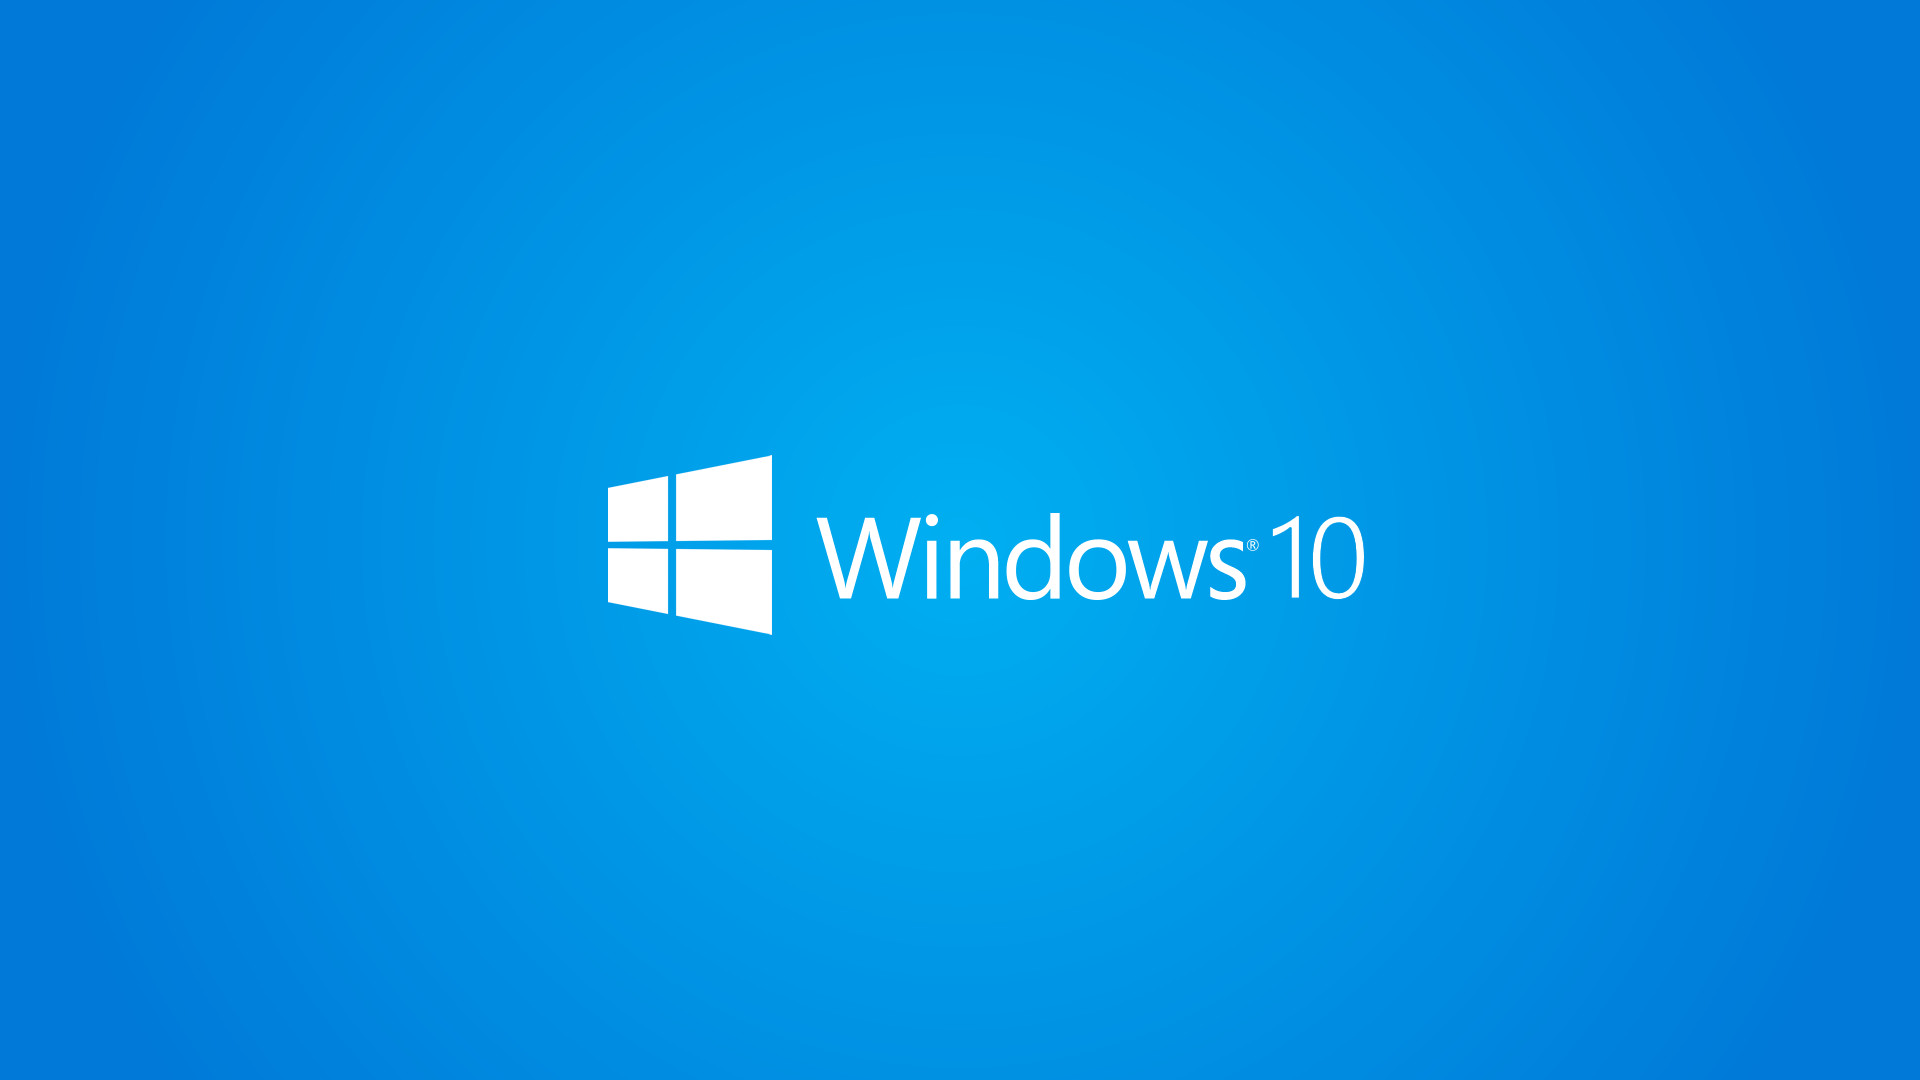 windows 10 1080p wallpapers 61 images